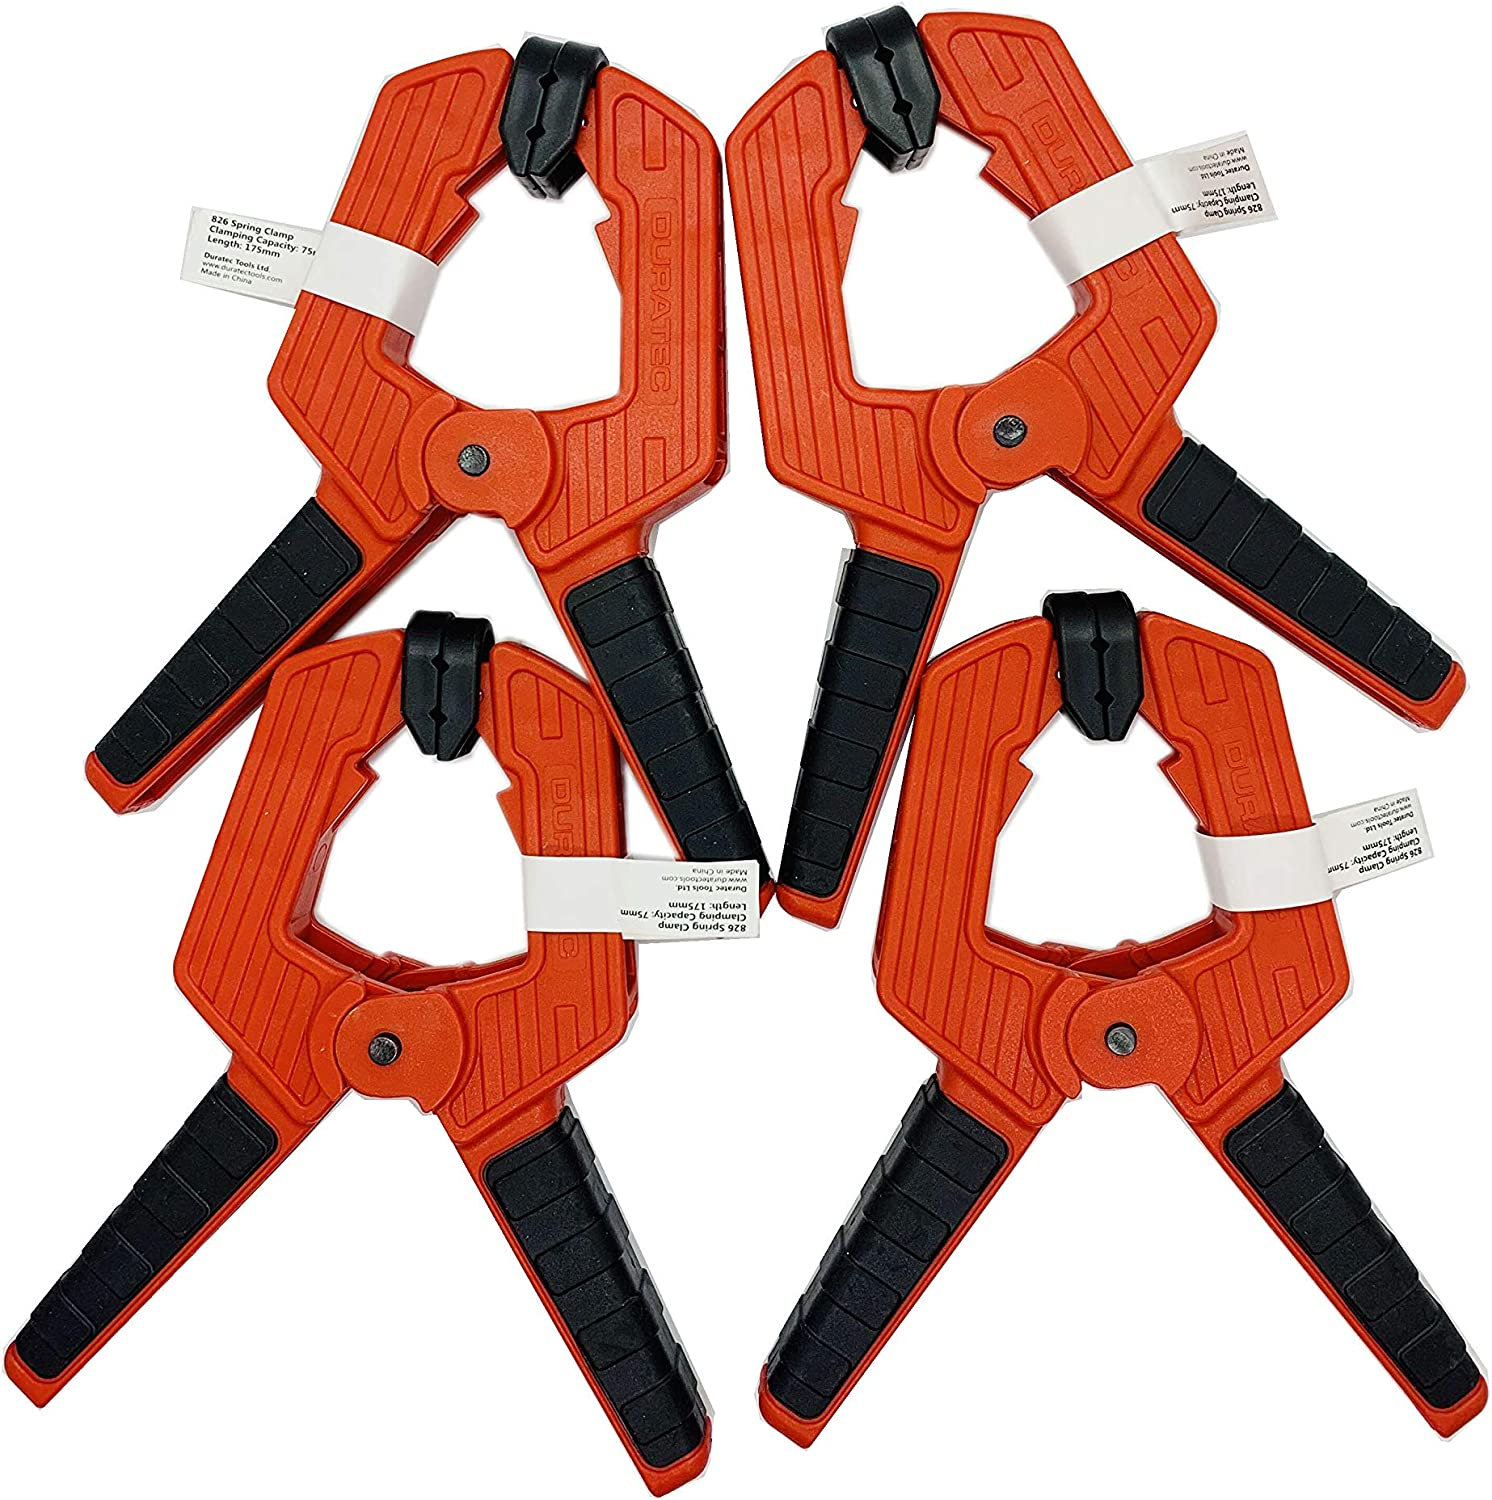 Max 73% OFF Fladess #826 Spring Clamp set 4 New life 7inch of